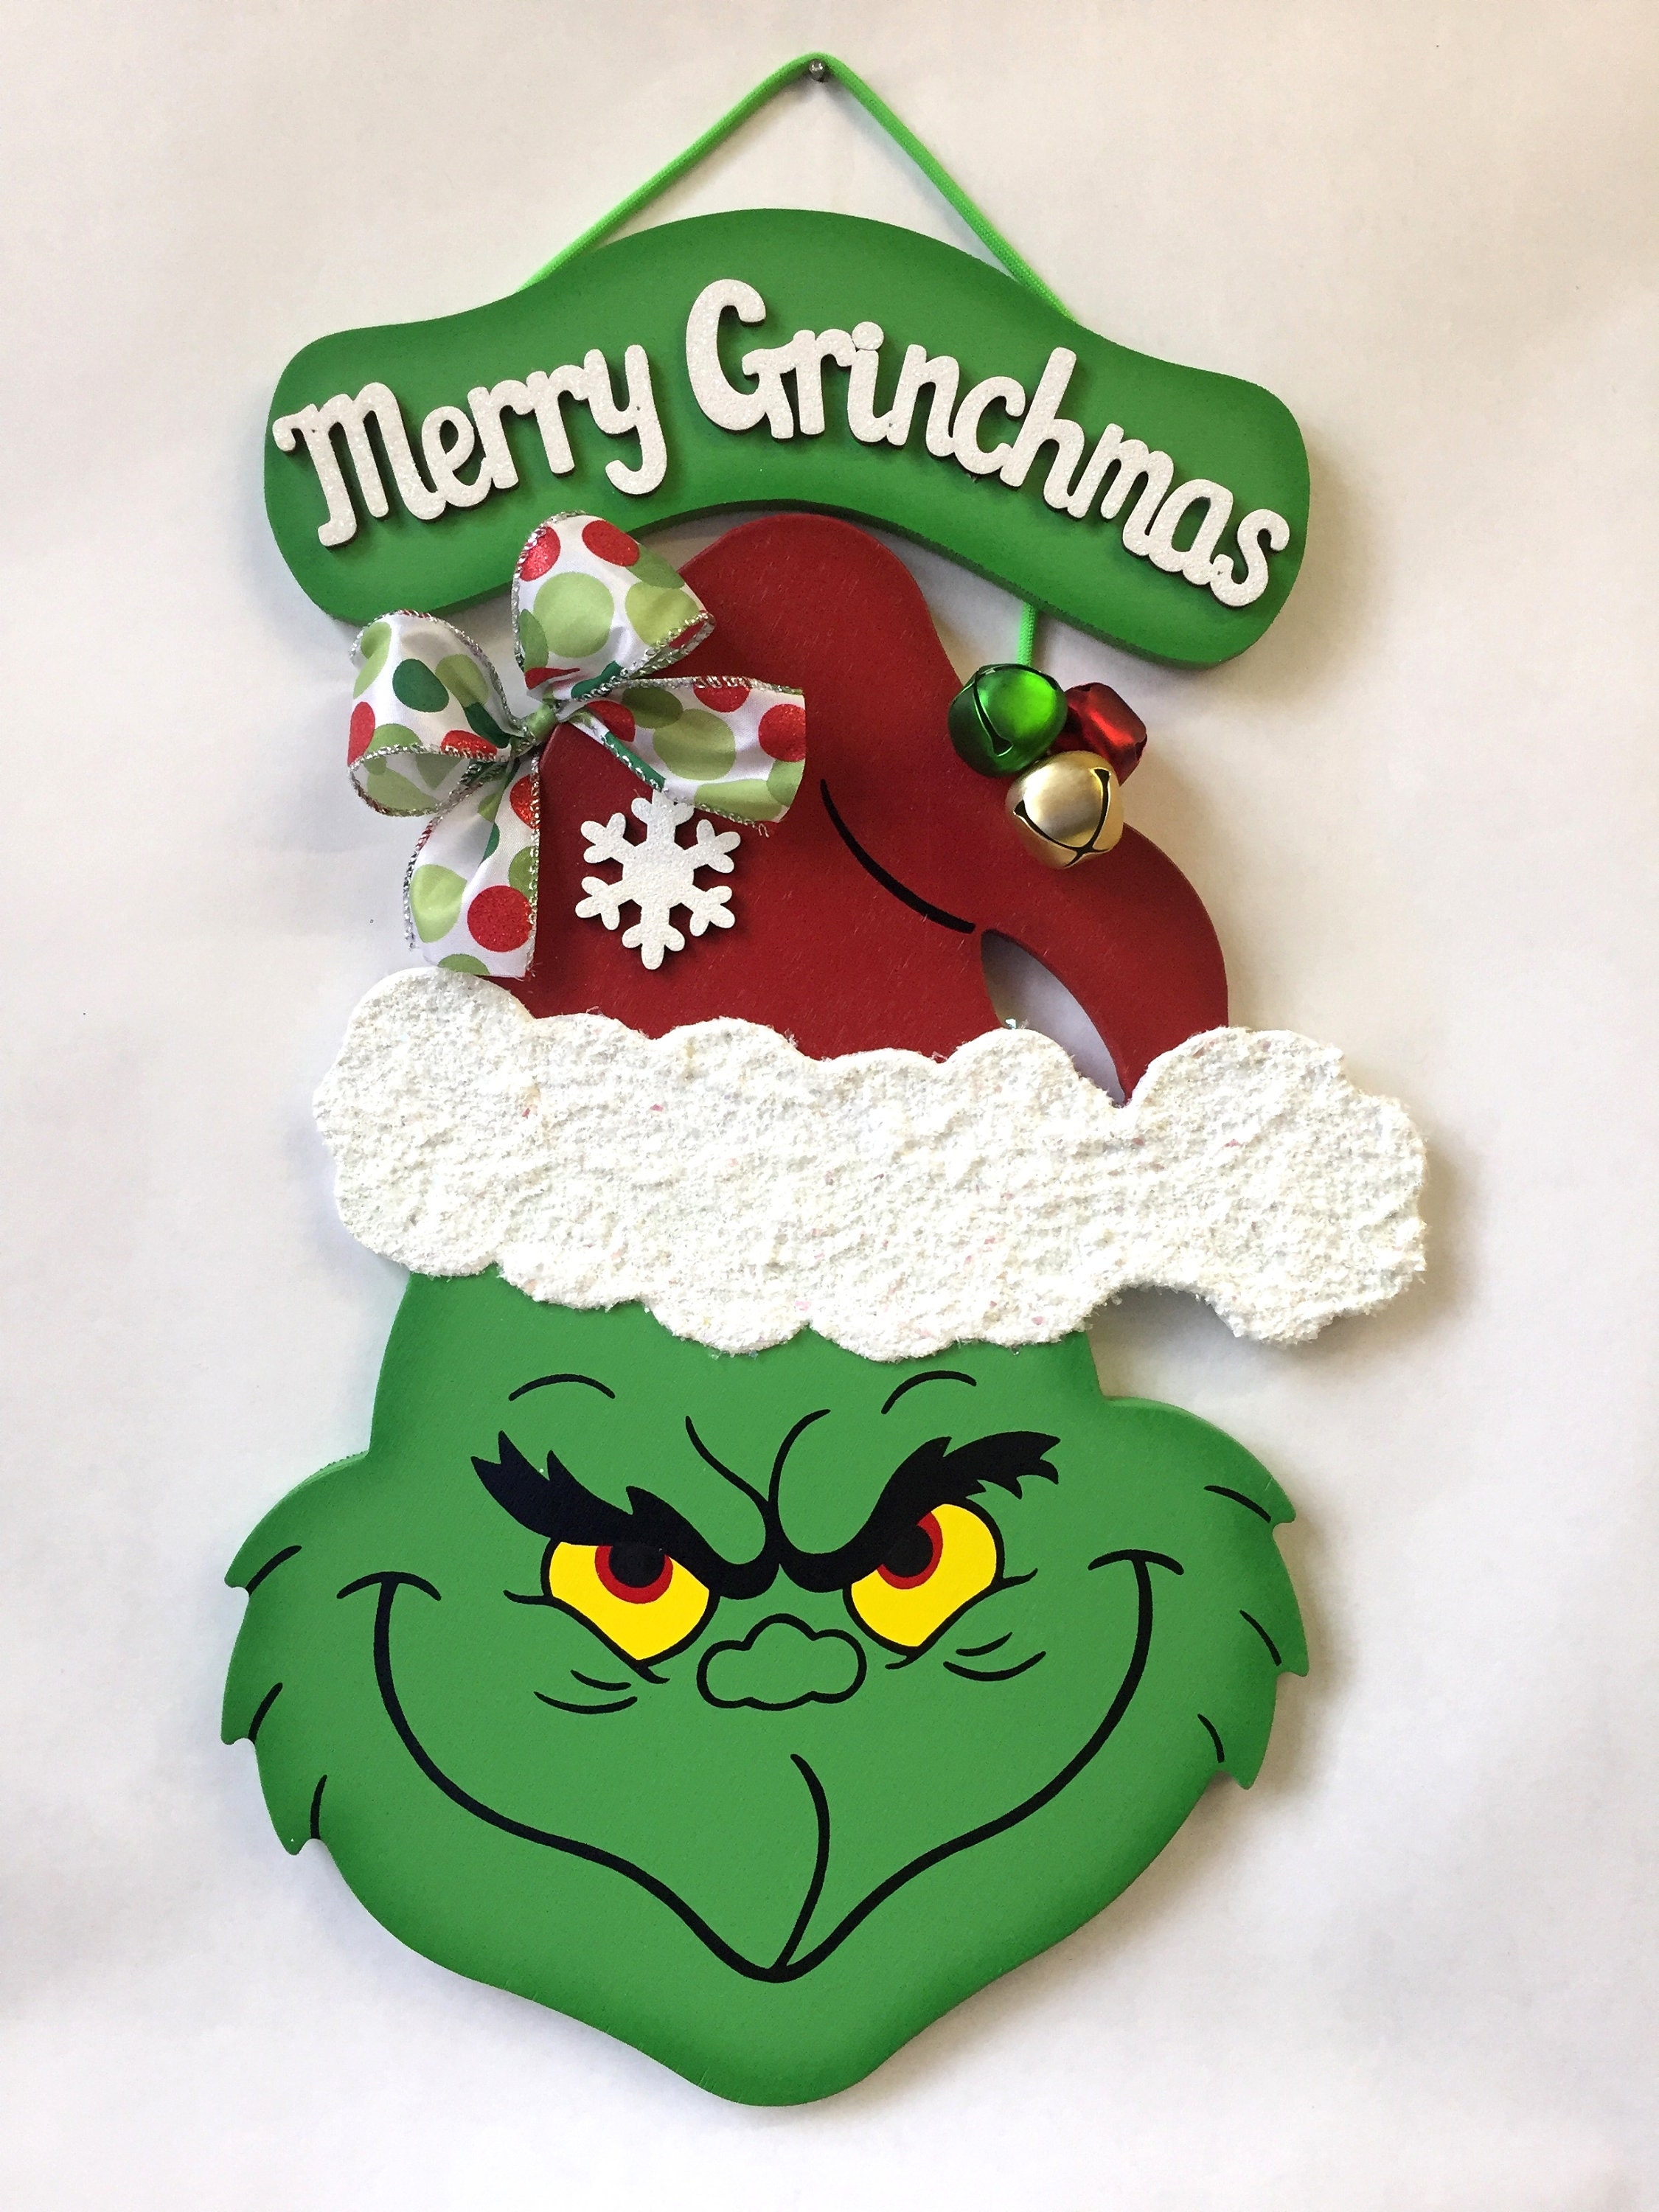 Merry Grinchmas Grinch Christmas Grinch Grinch crafts Grinch | Etsy